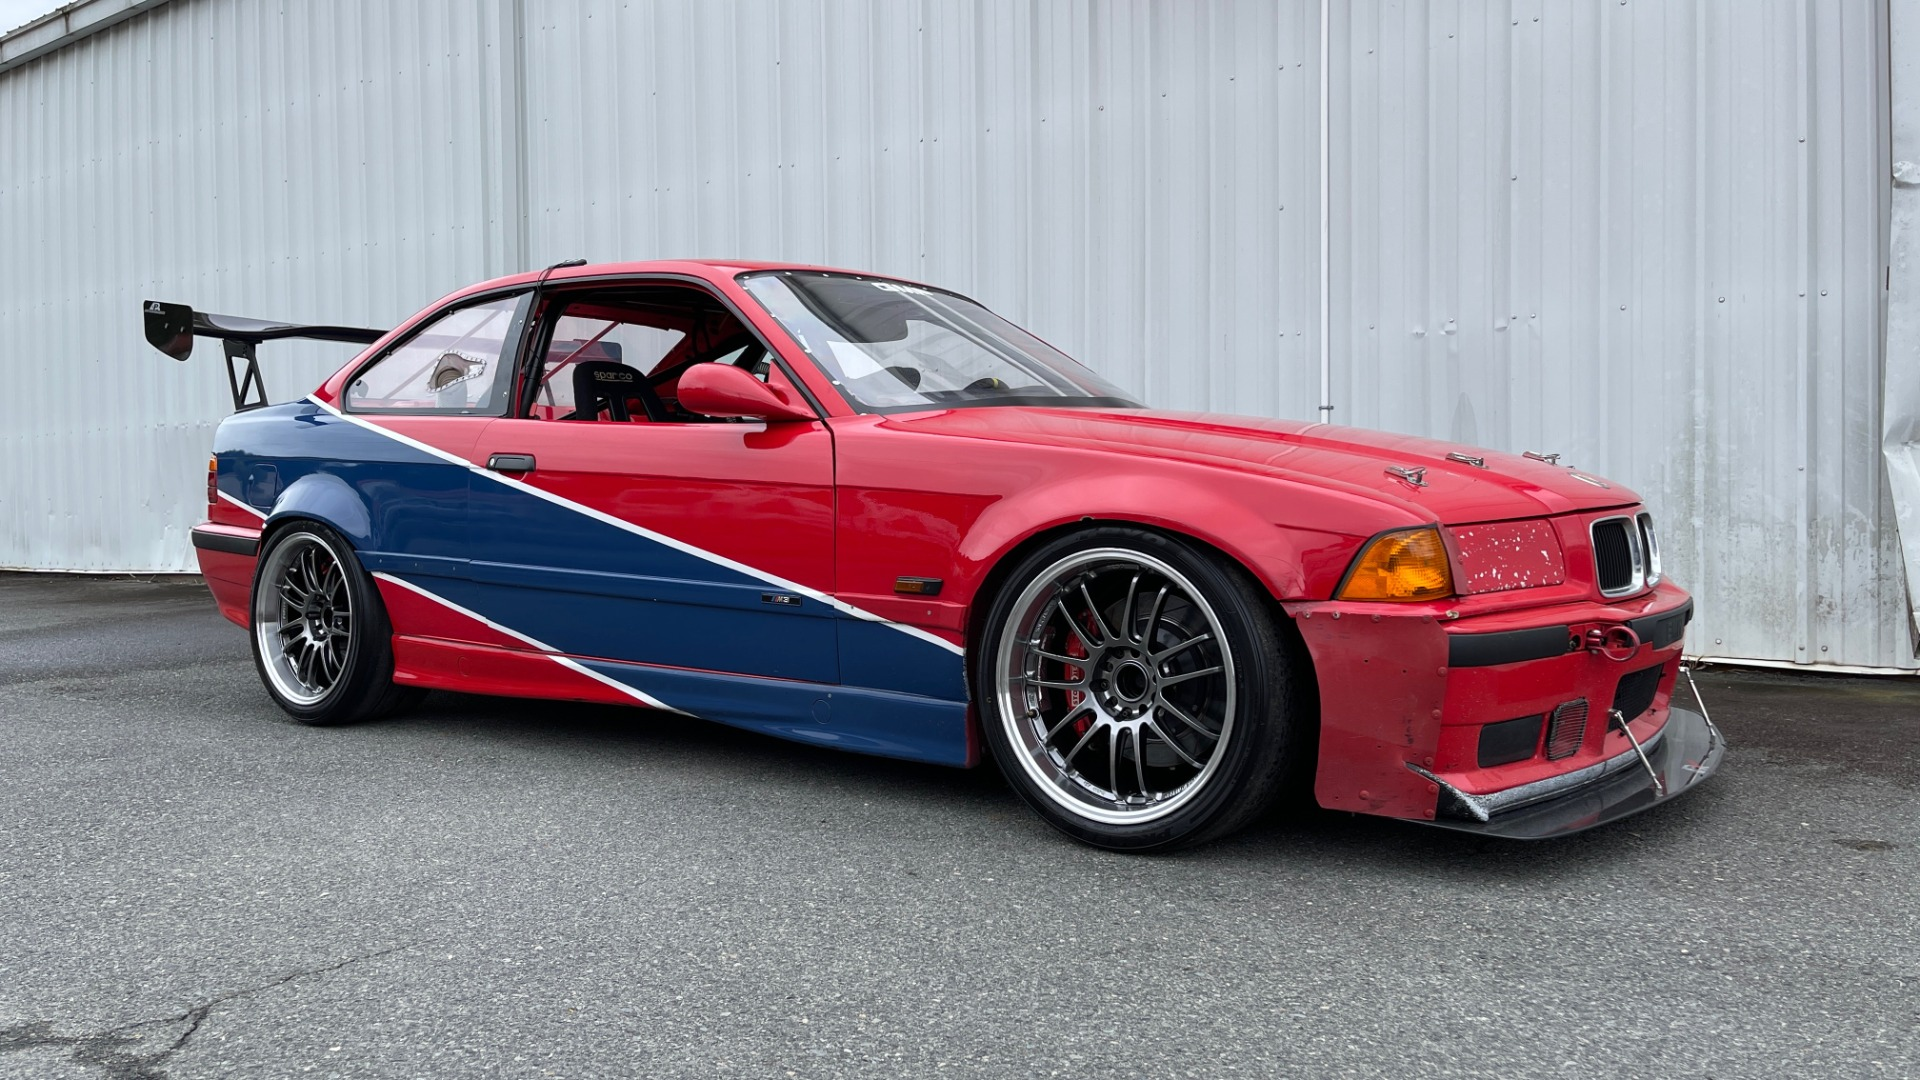 Used 1996 BMW 3-SERIES M3 TRACK CAR / 5-SPD / MANUAL / FULL CAGE / CARBON FIBER WING for sale $47,995 at Formula Imports in Charlotte NC 28227 1